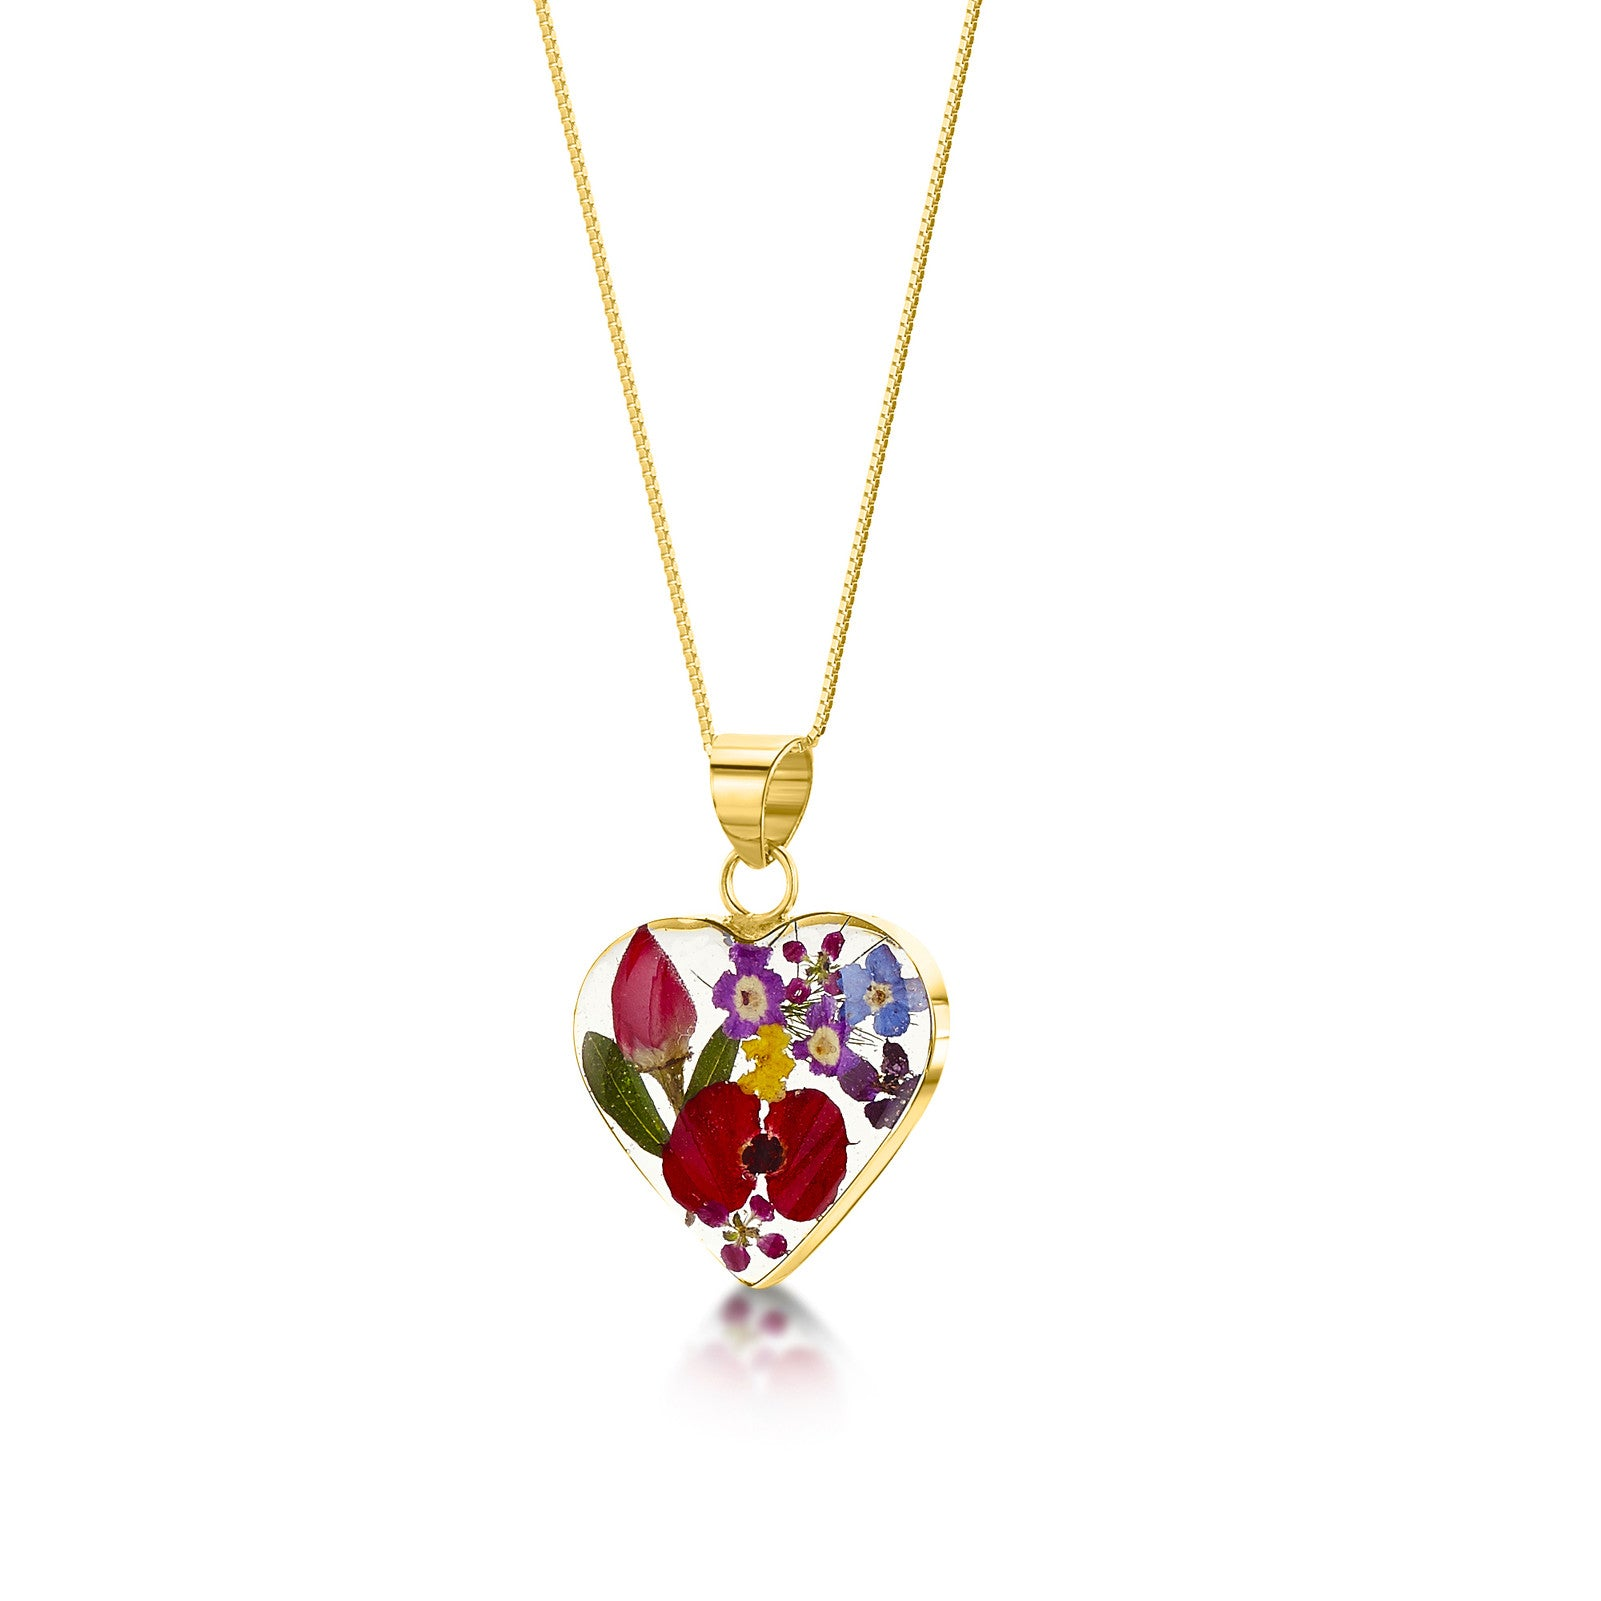 23K Gold plated sterling silver necklace - Mixed Flowers - Med Heart